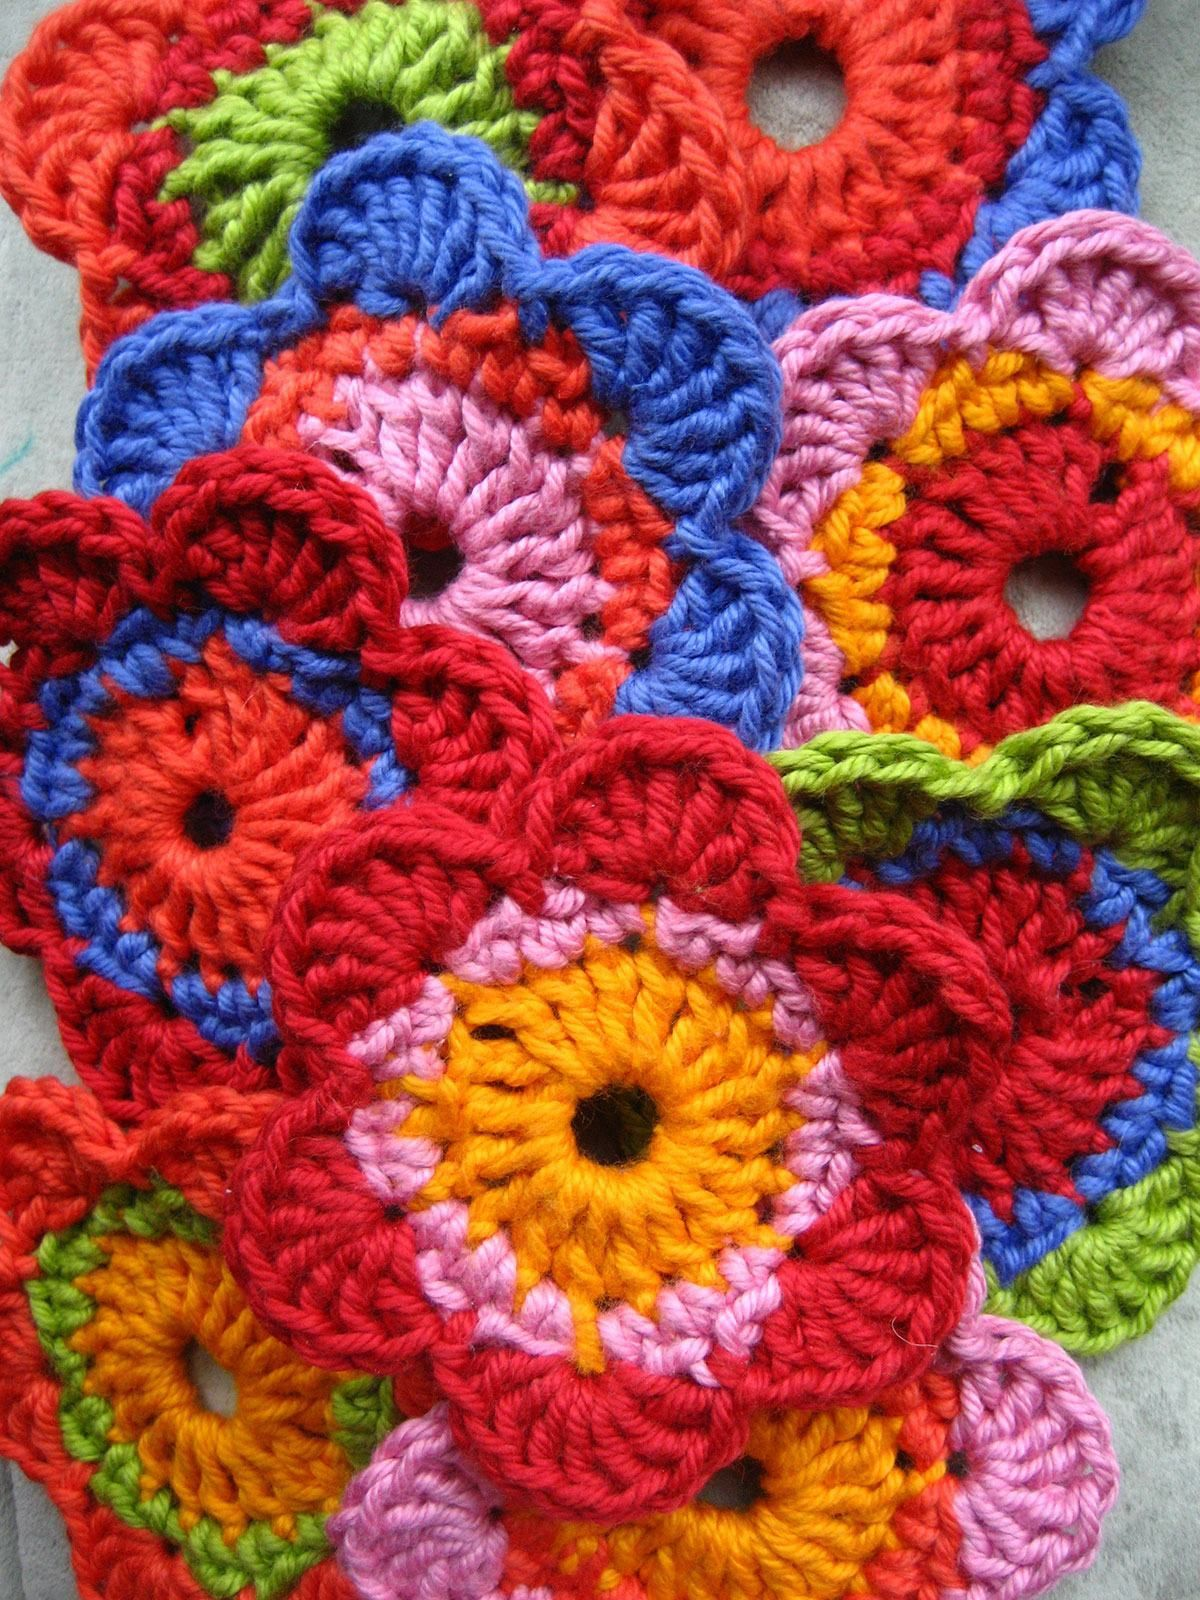 Flores de croch 125 modelos fotos e passo a passo be creative crocheted flowers free pattern from lucy at bankloansurffo Gallery